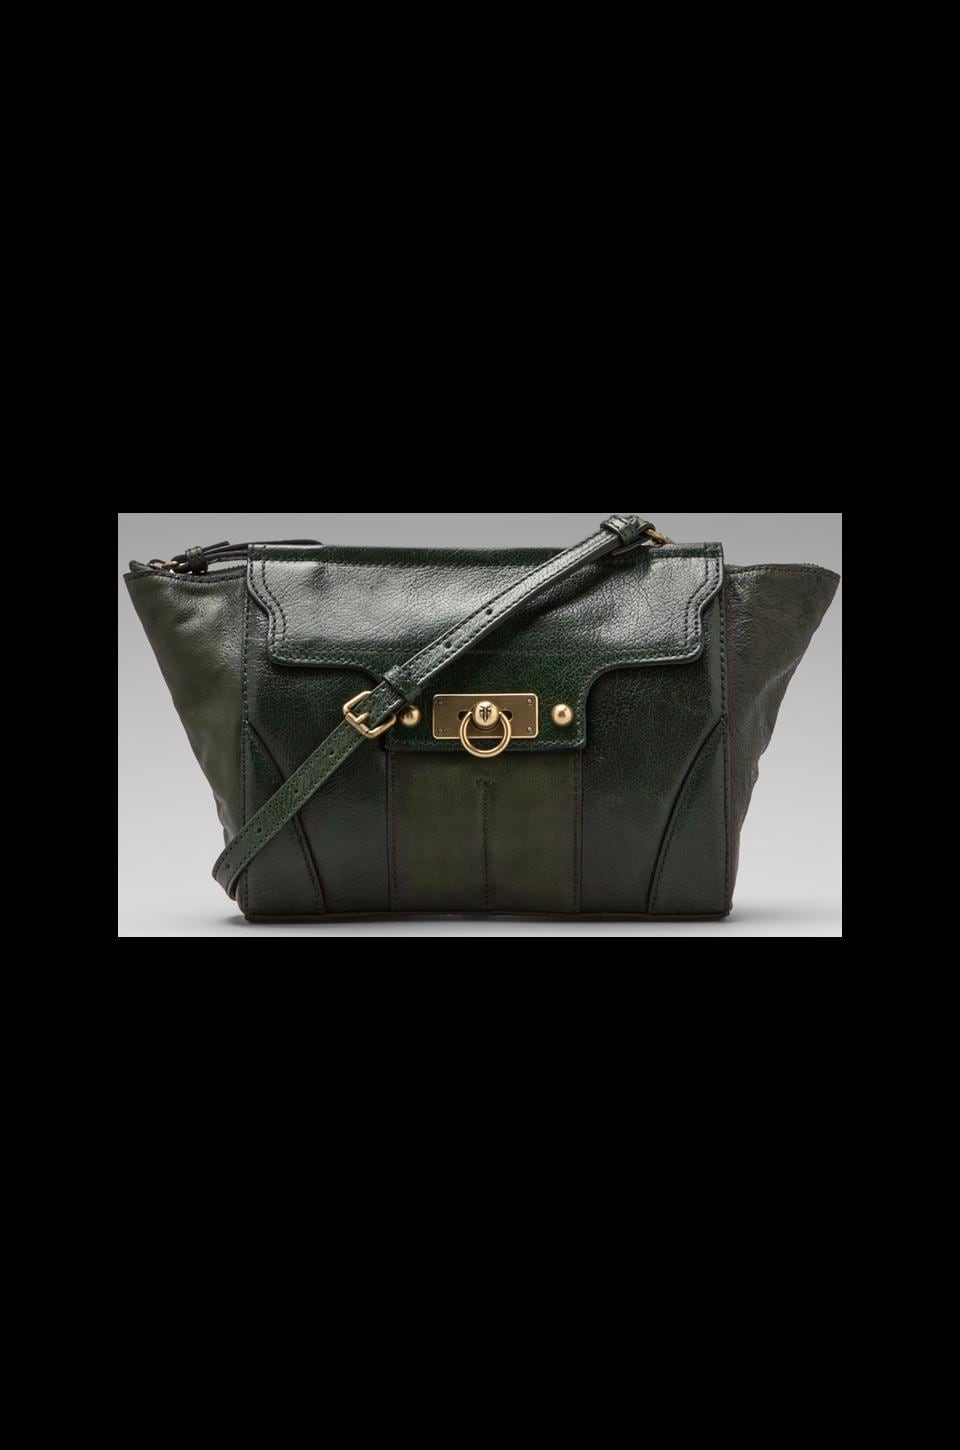 Frye Dayna Clutch in Green